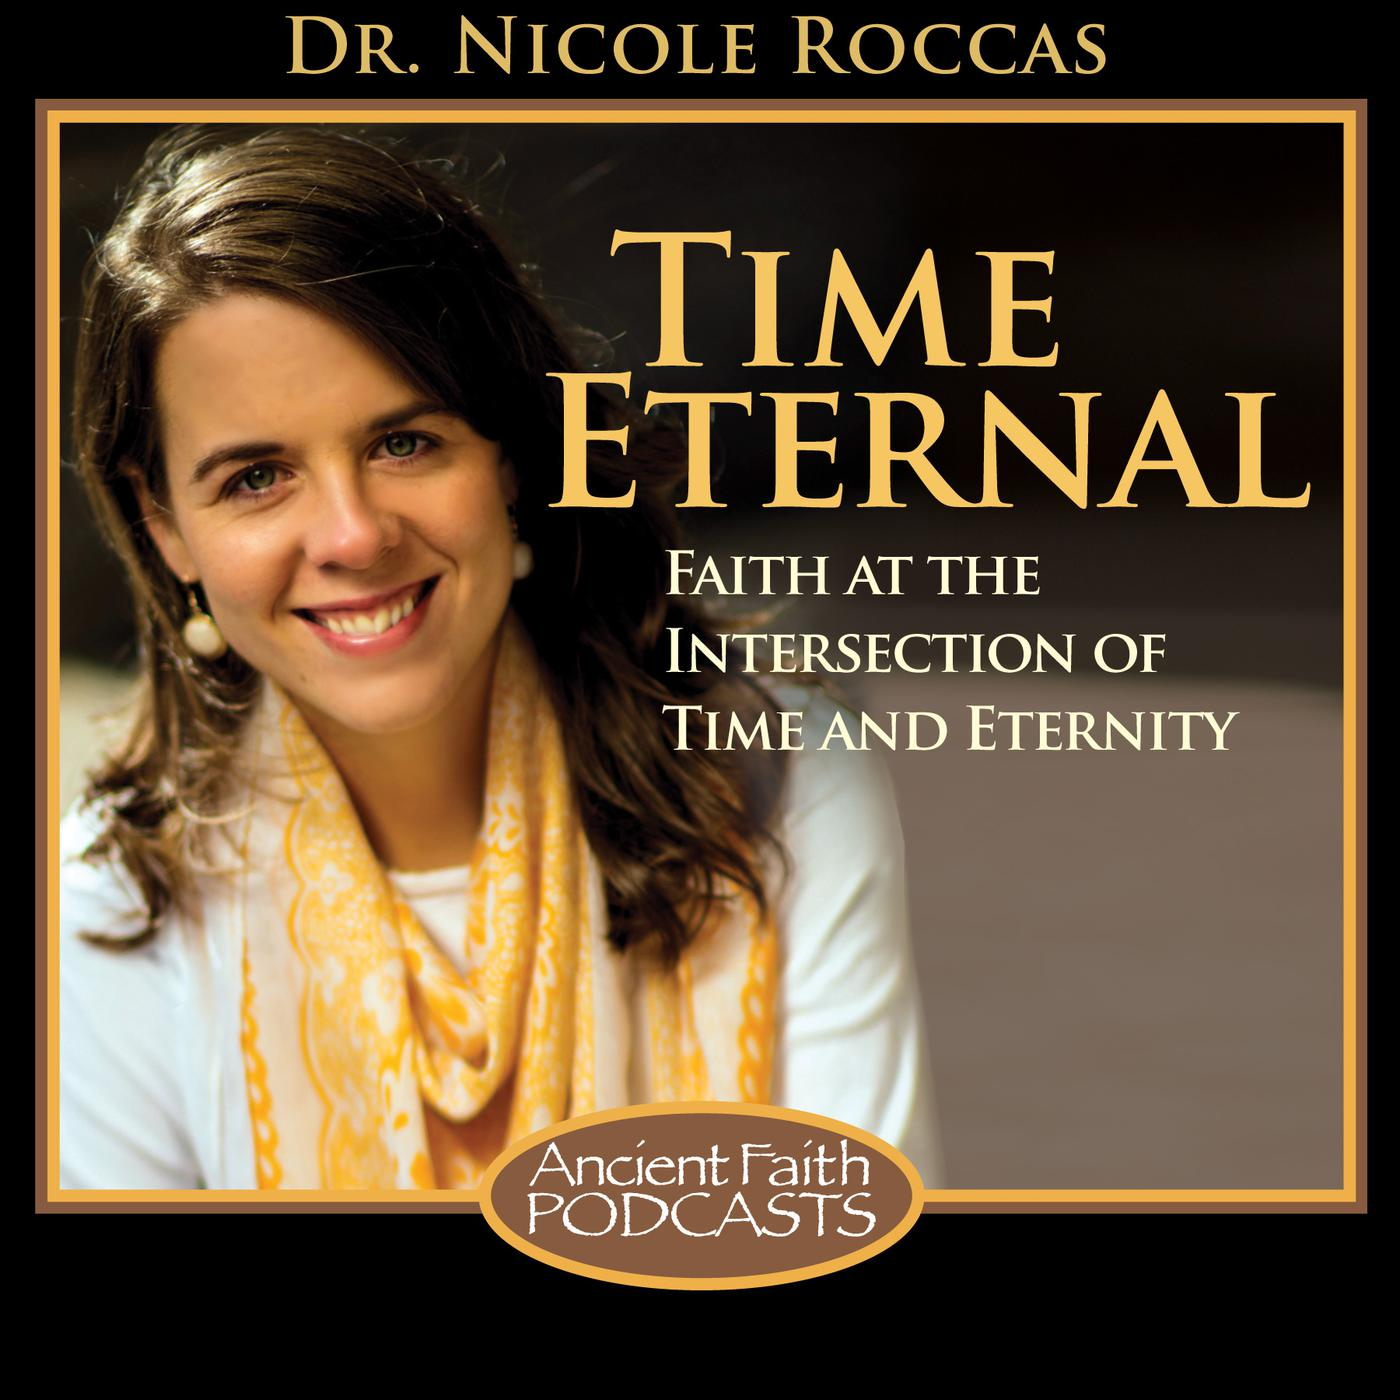 Time Eternal (podcast) - Dr  Nicole Roccas and Ancient Faith